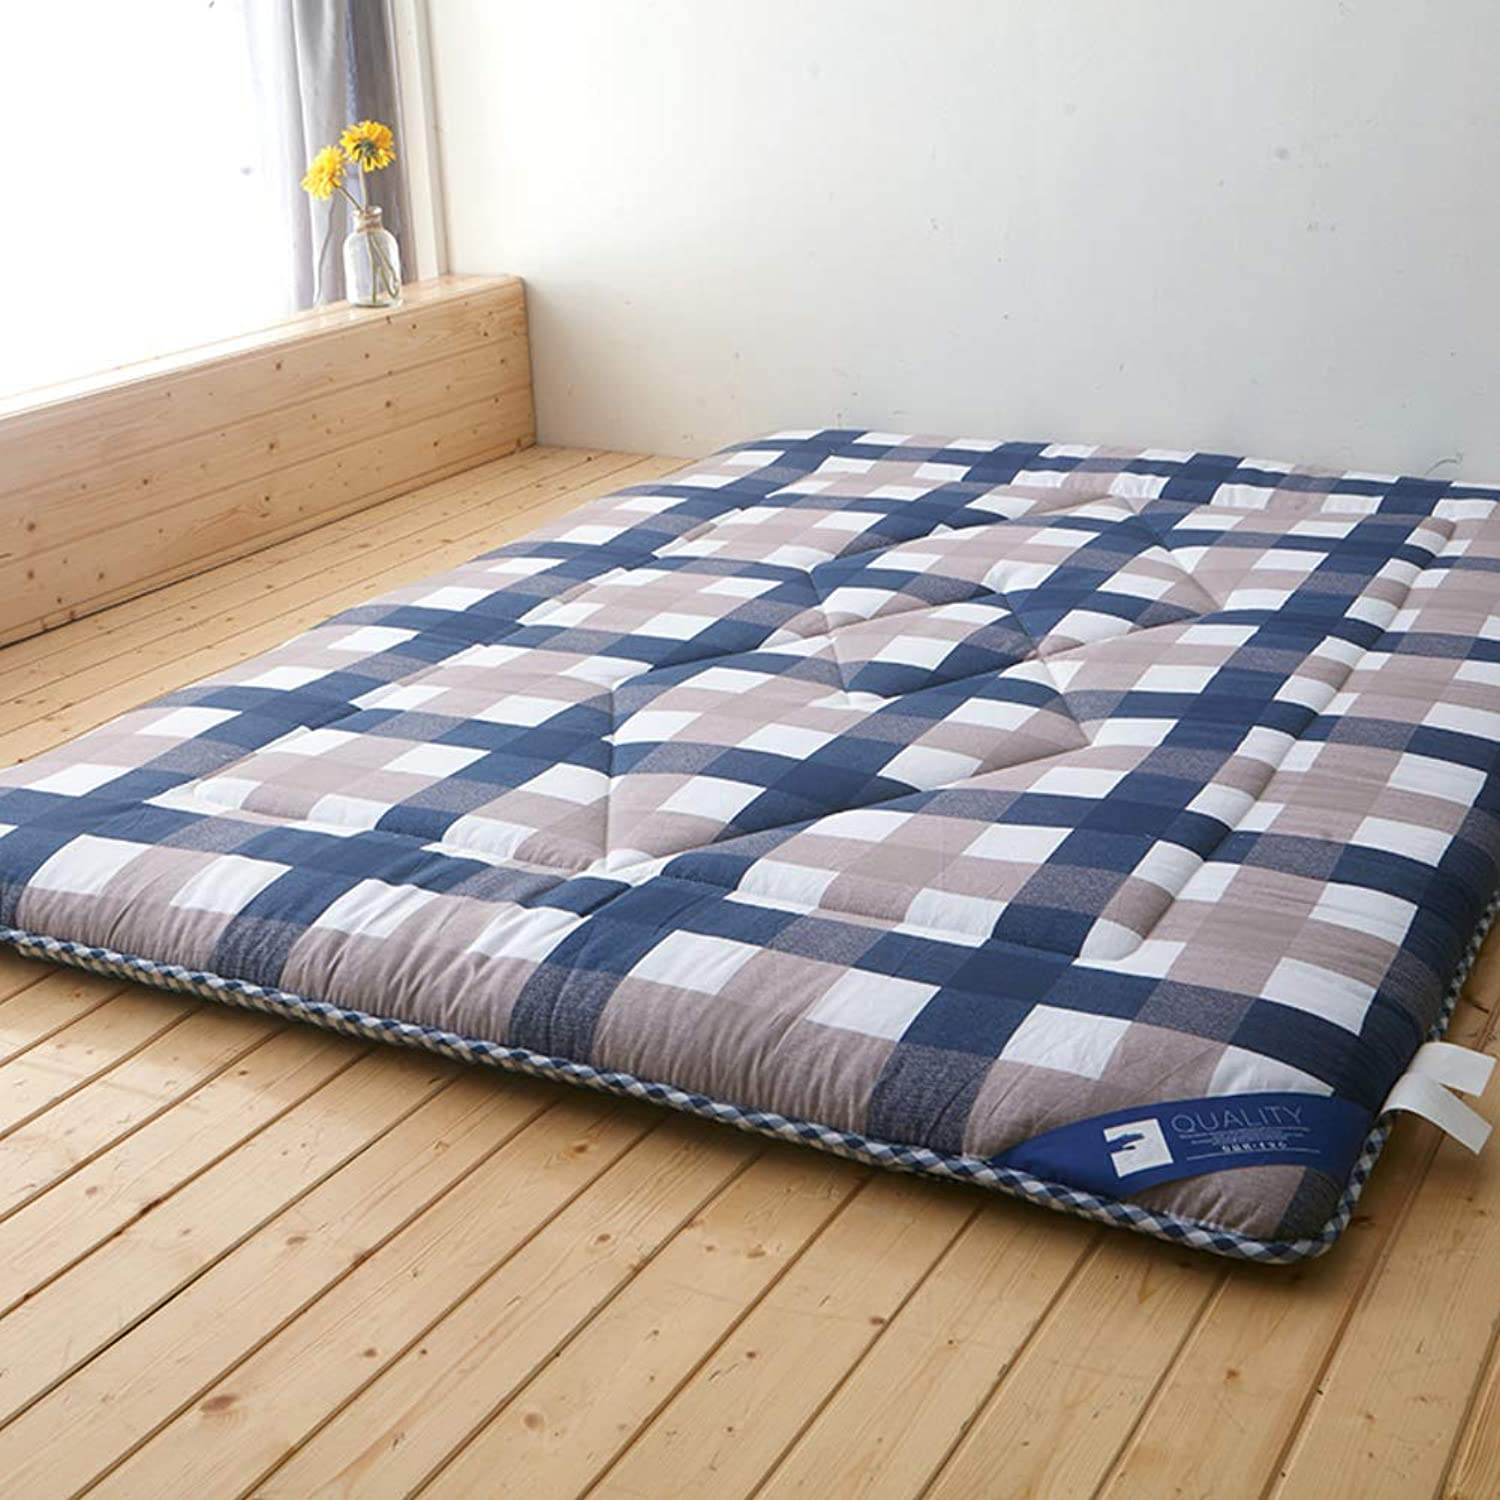 Cotton Tatami Sleeping Floor pad Mat, Foldable Light Breathable Mattress Topper Roll up Japanese Style for Living Room Dorm Student-C 90x200cm(35x79inch)